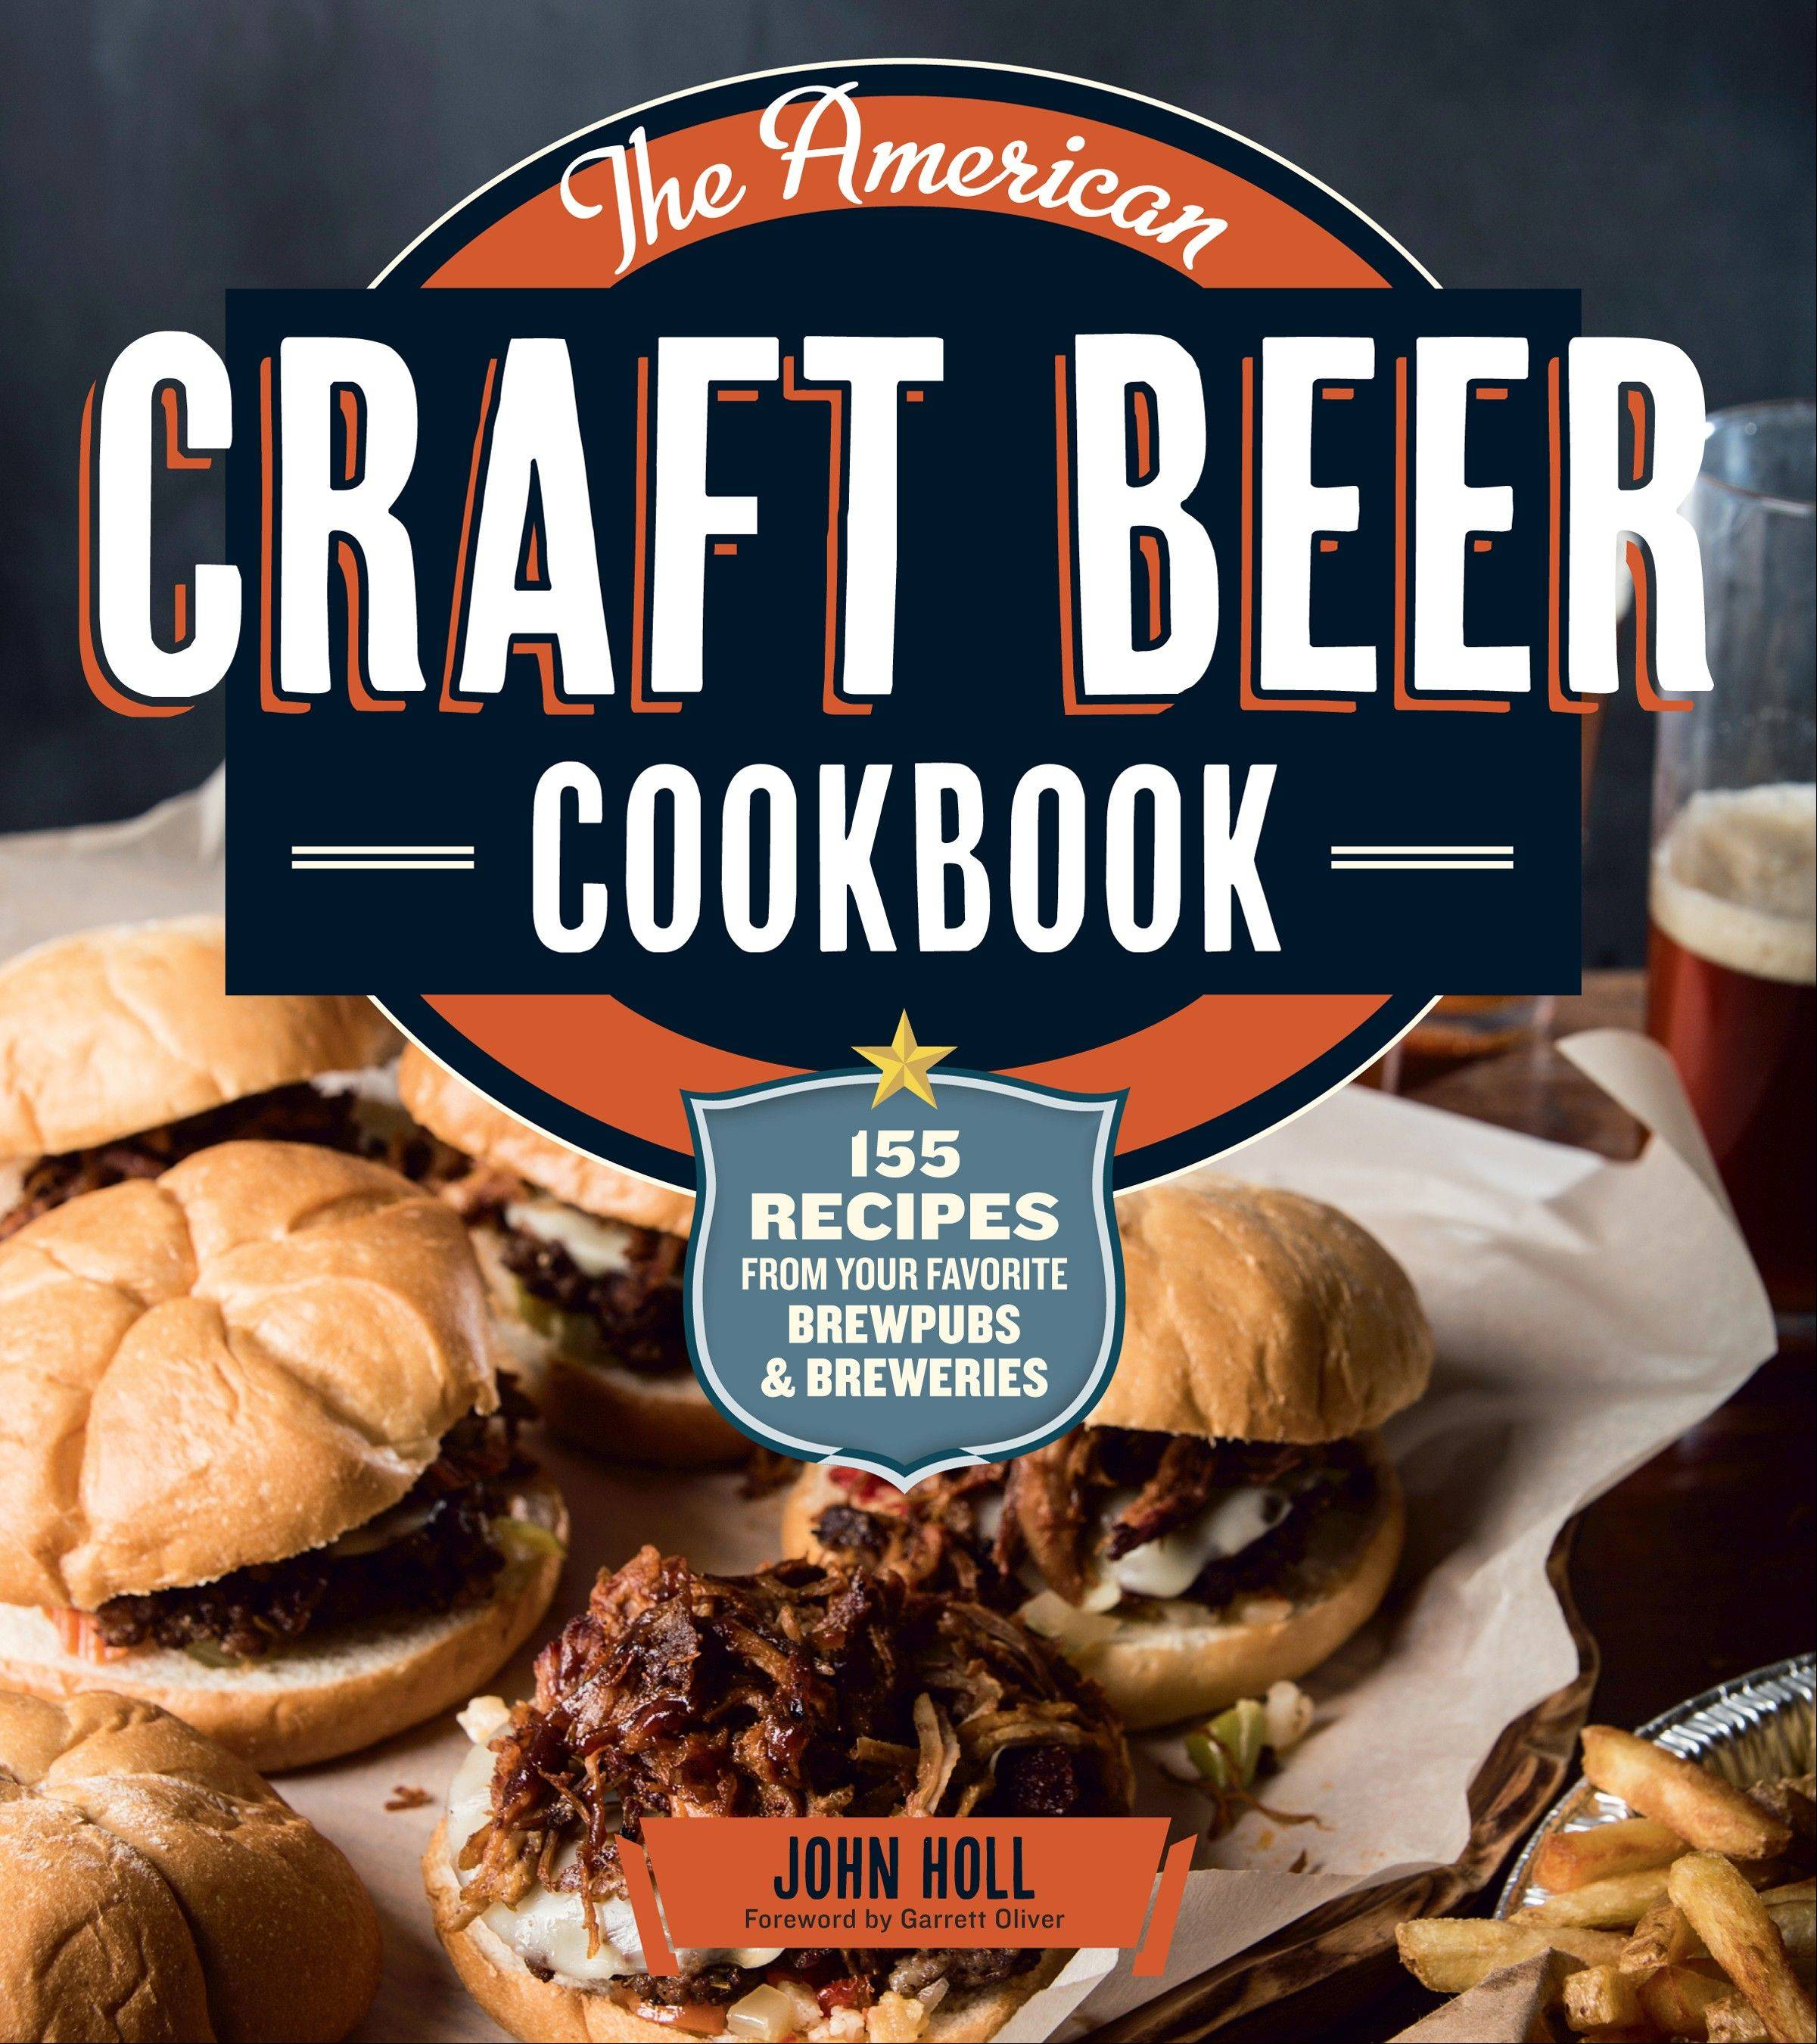 �The American Craft Beer Cookbook� by John Holl (2013 Storey)